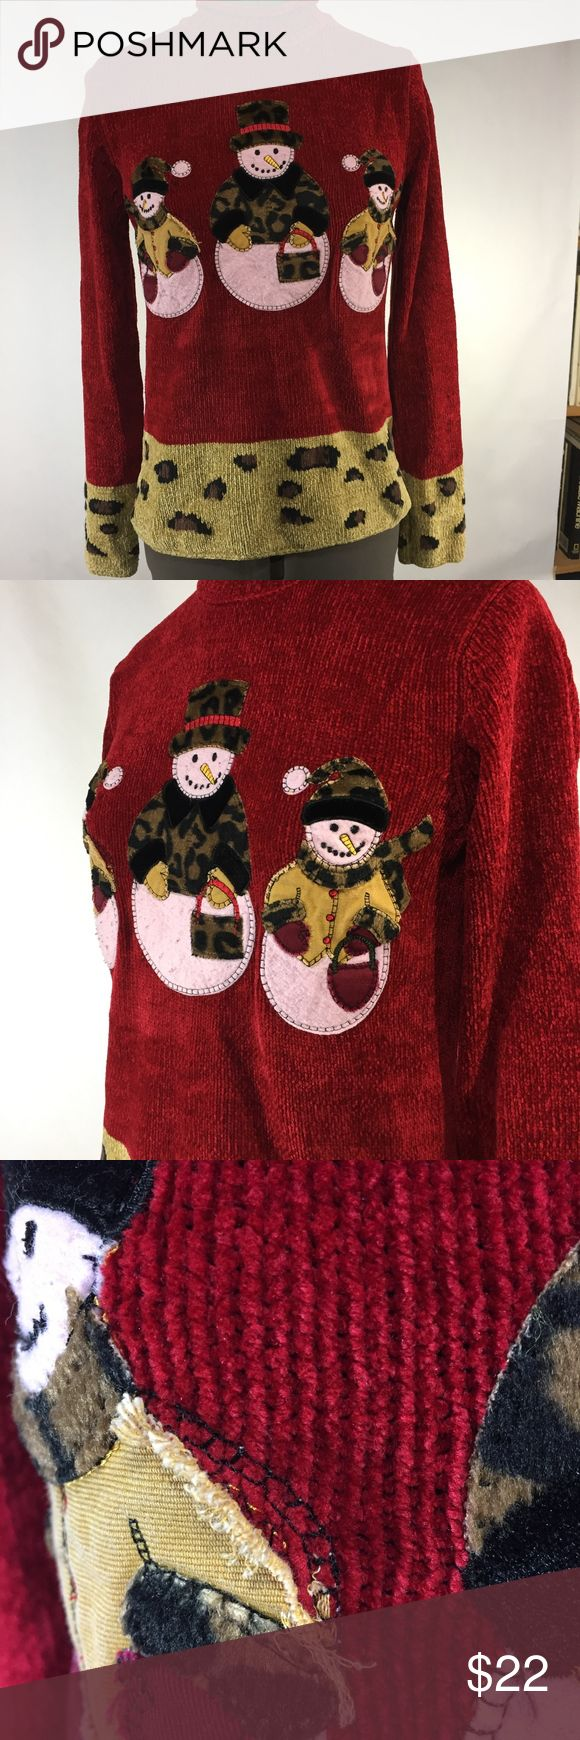 Chadwicks leopard print snowman sweater Chadwicks - Womens Red background acrylic pullover longsleeve ugly Christmas sweater, mock turtleneck collar with three snowmen dressed in leopard print on front and leopard print hem. Some loose threads on one snowman, see 3rd image, easily fixed. Snowman on back. Chadwicks Sweaters Cowl & Turtlenecks